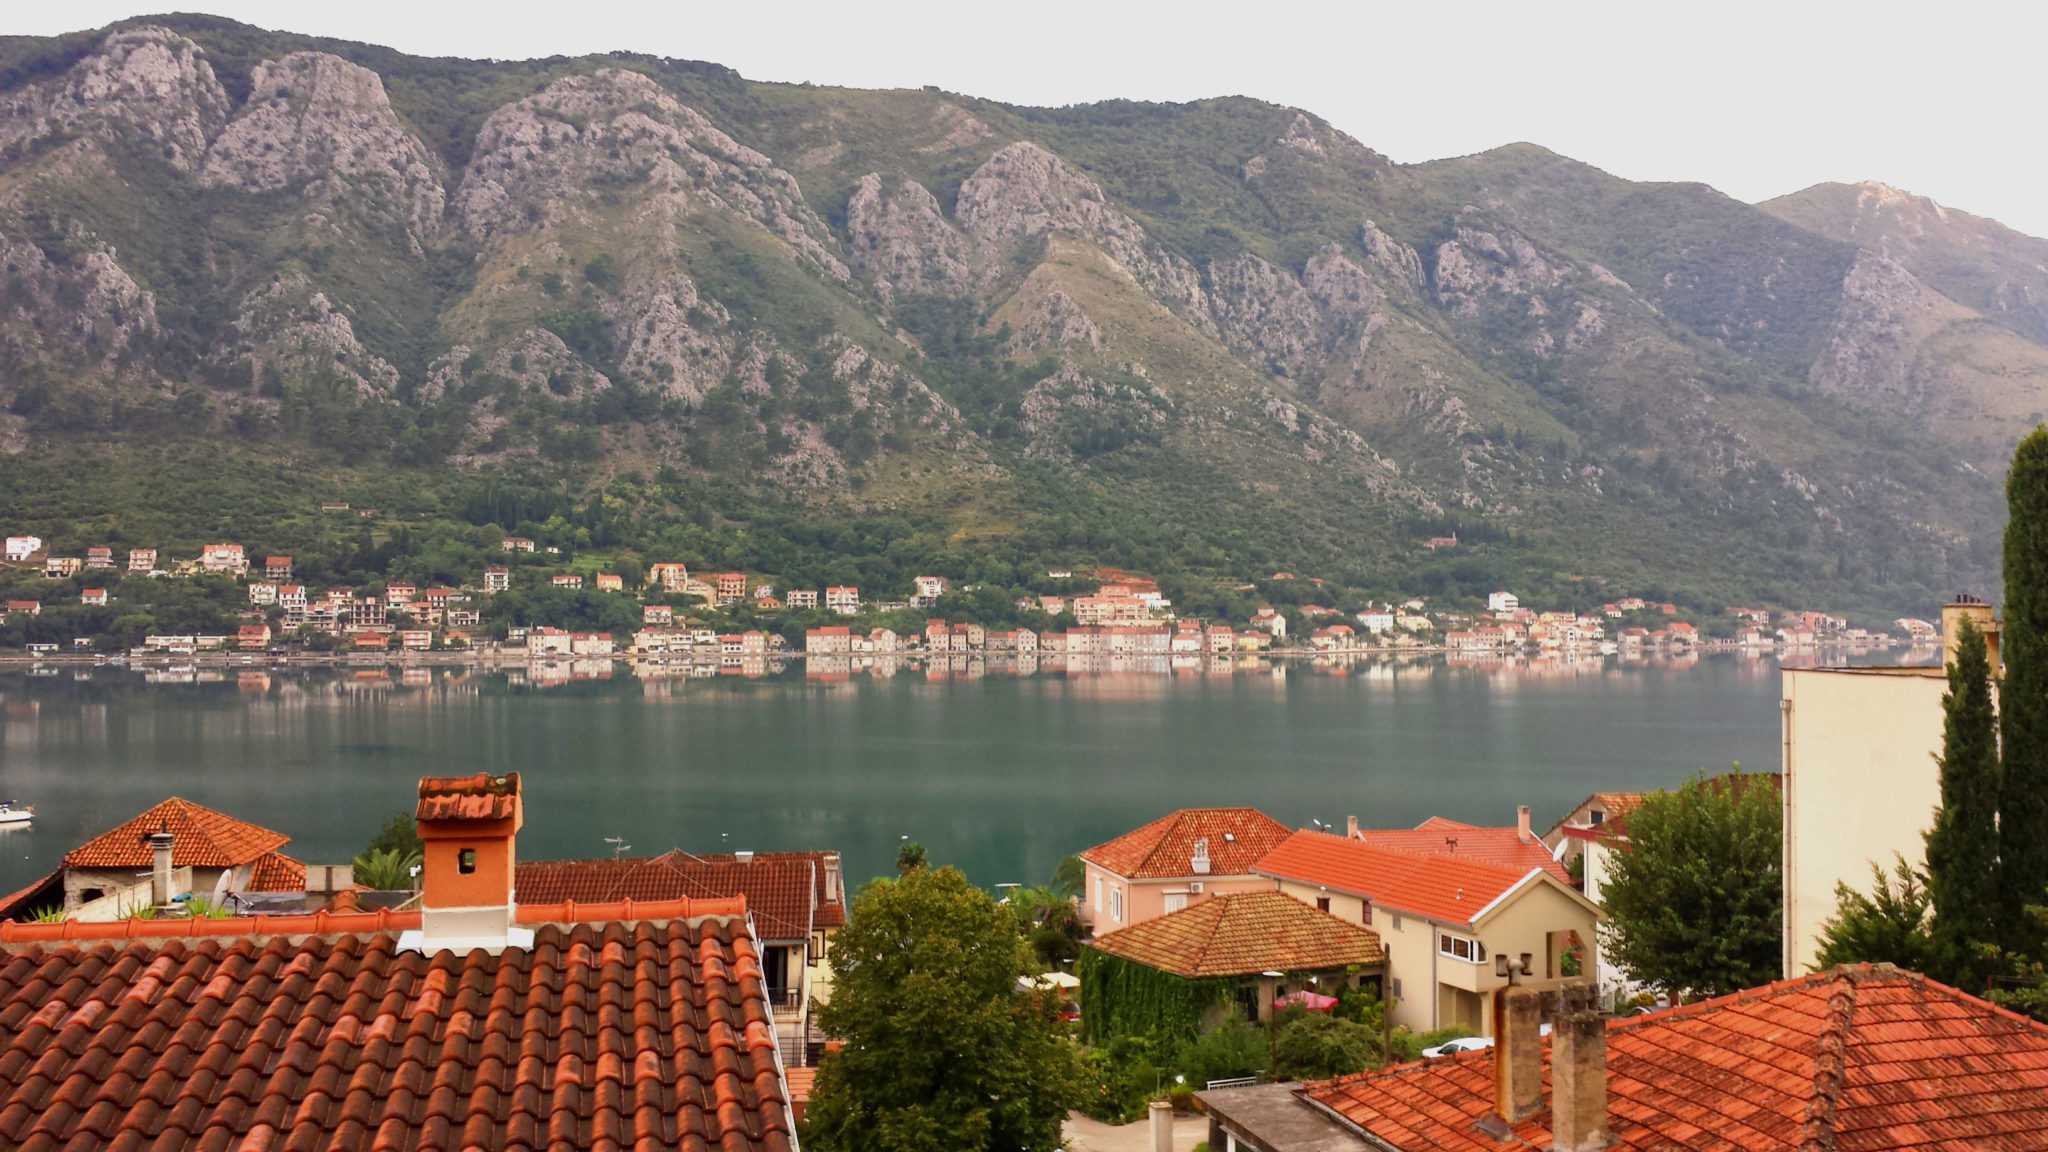 Hema_Montenegro_View_of_kotor_from_room